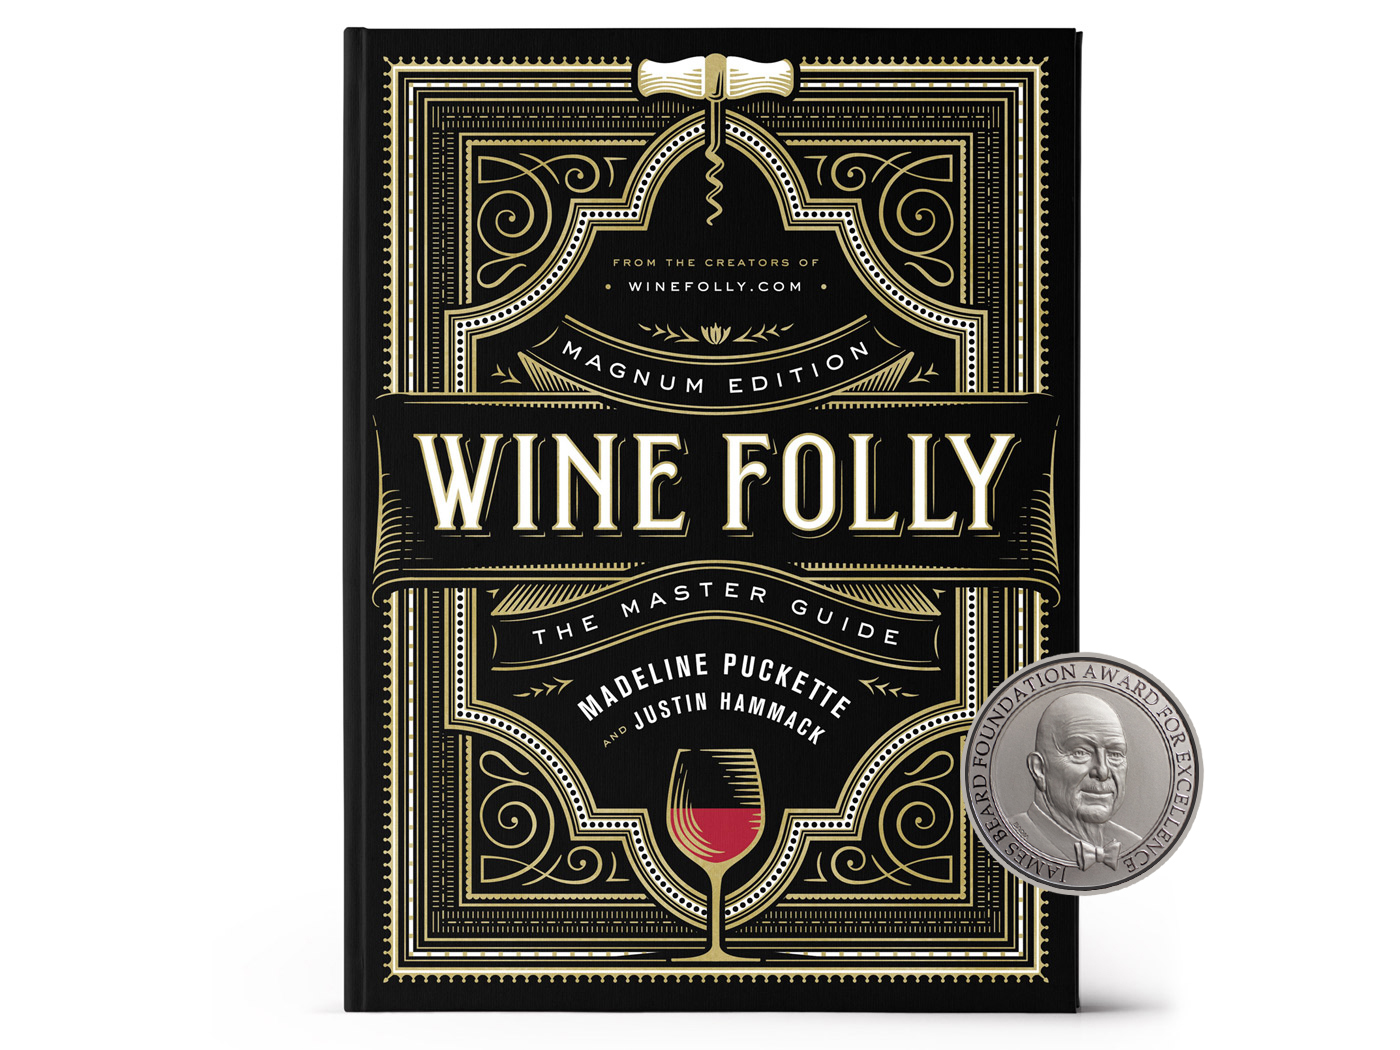 Wine Folly: Magnum Edition - James Beard Award